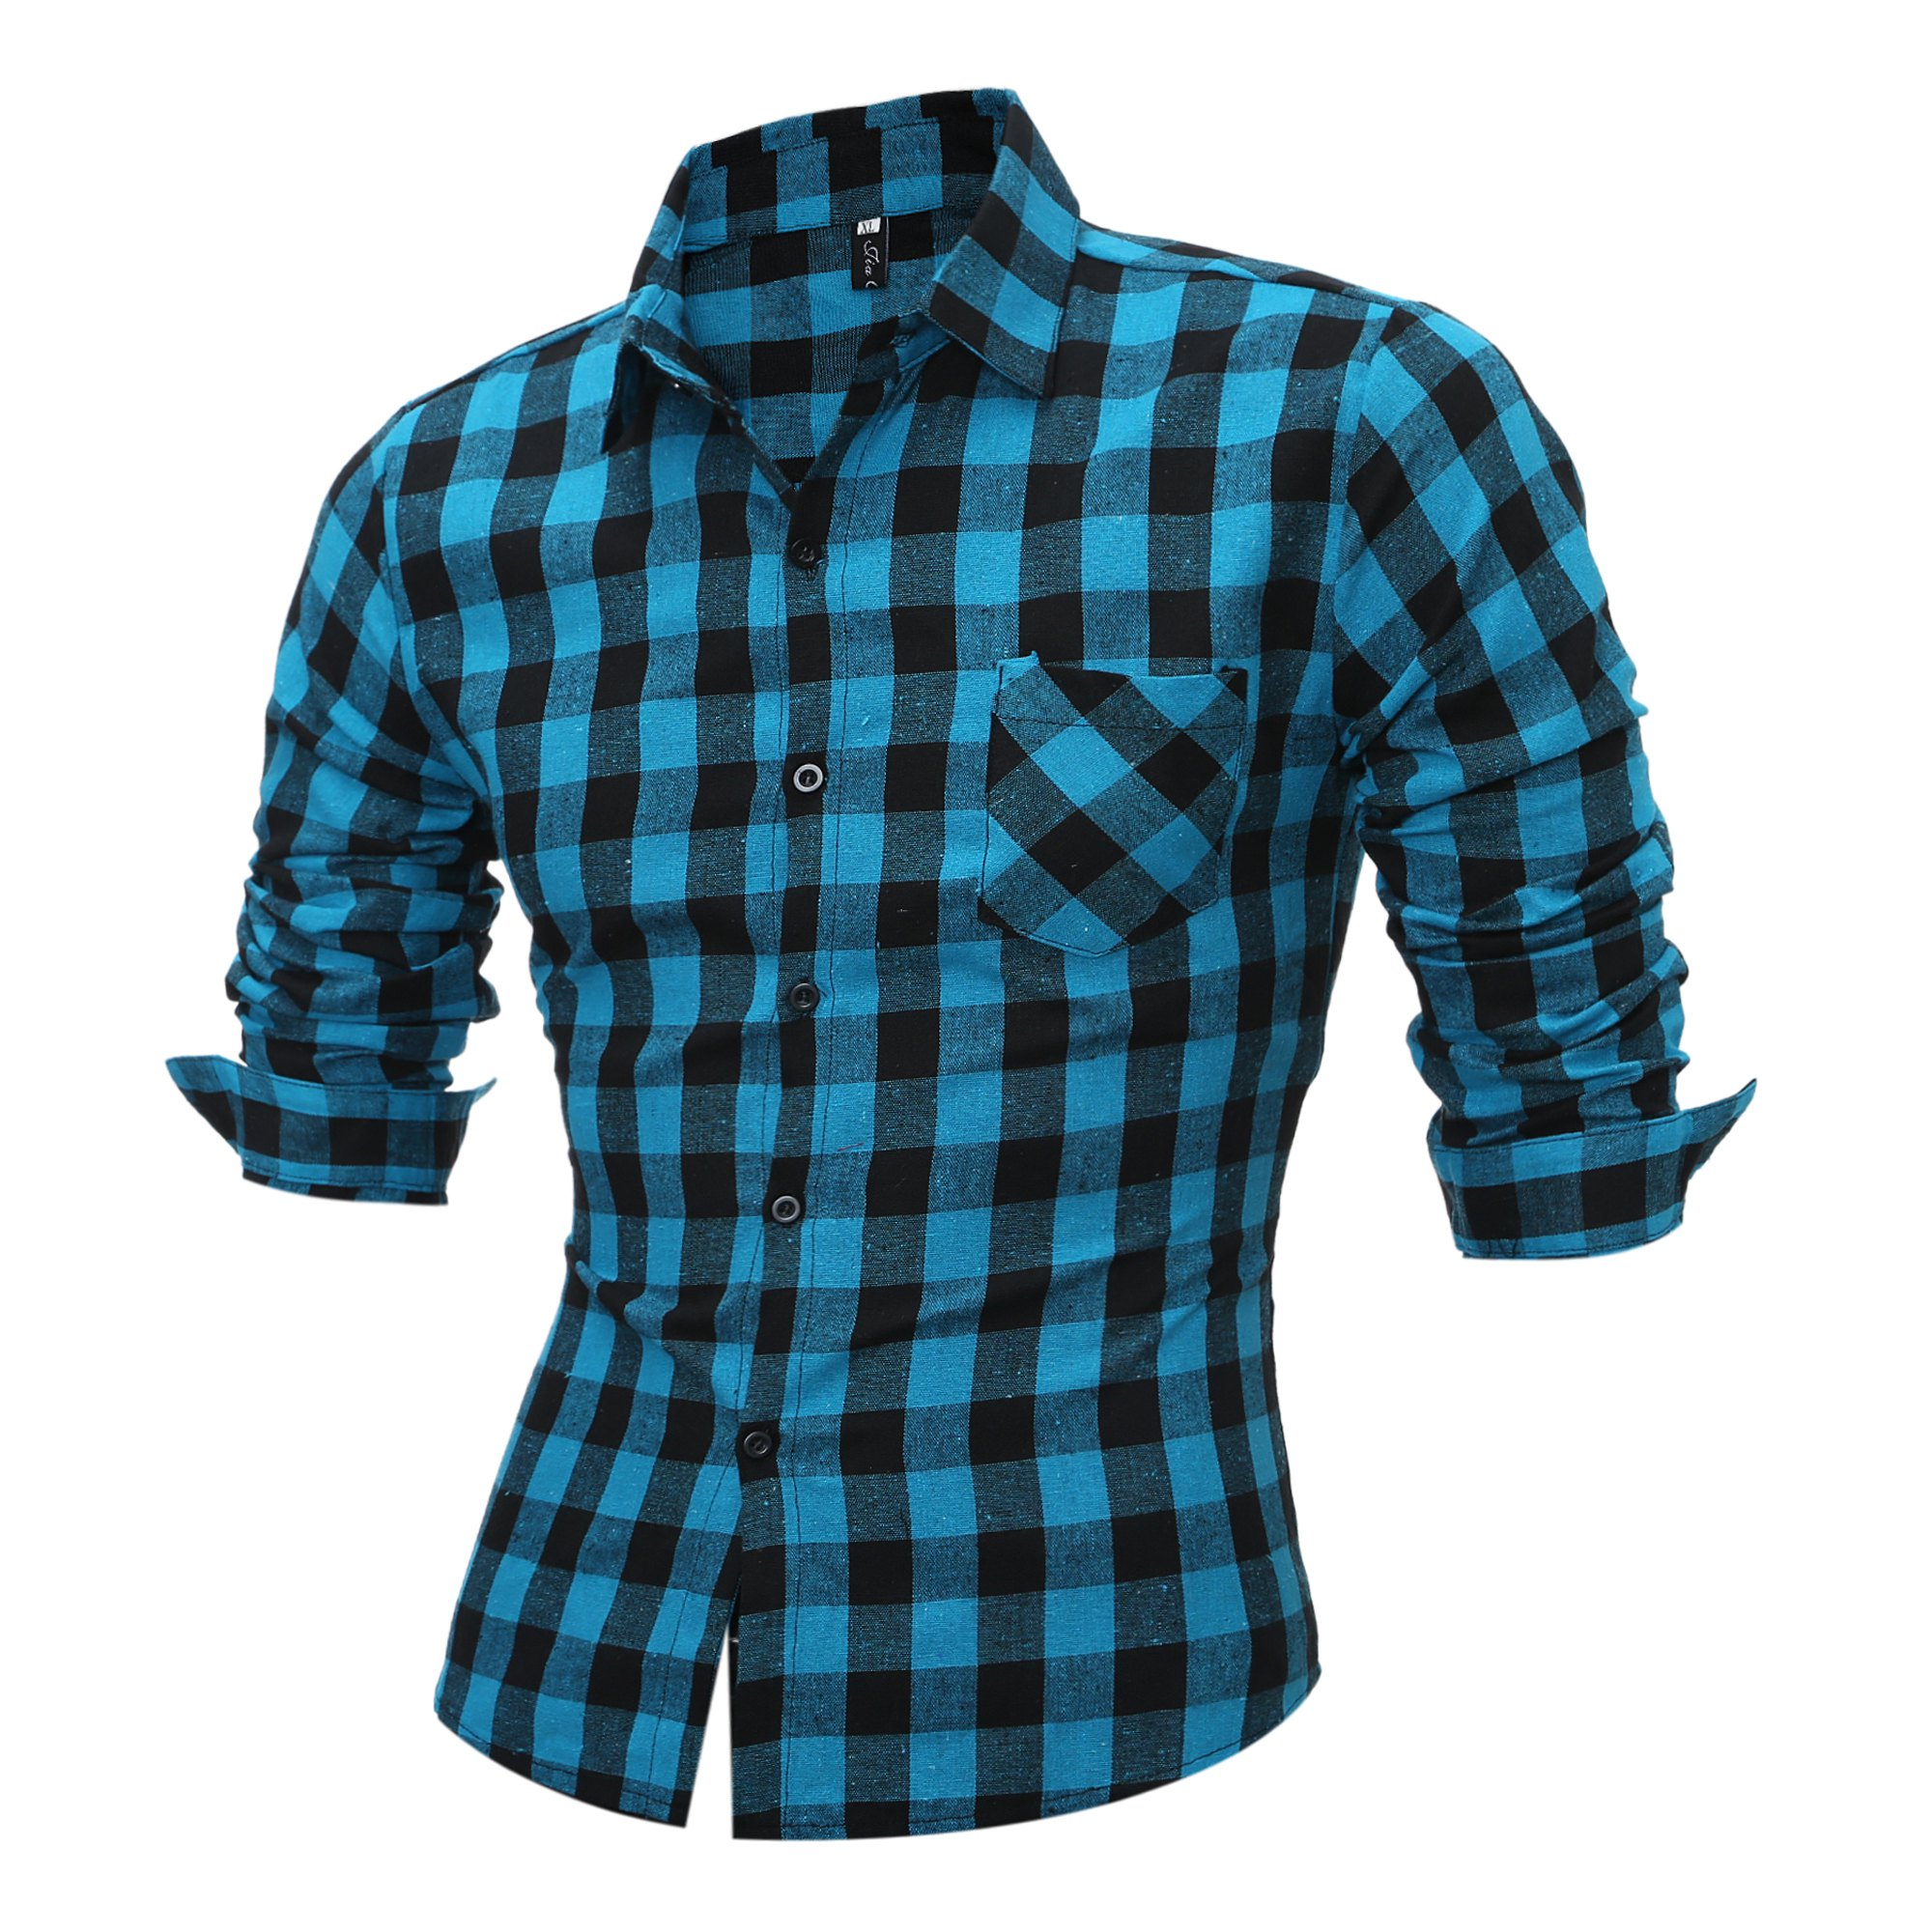 Shop piserialajax.cf for Women's dress shirts and Women's button-down shirts for every occasion. From traditional button-front shirts to our wardrobe-brightening Portland Stretch poplin shirts, we've got Women's dress shirts in long, three-quarter and short sleeves.